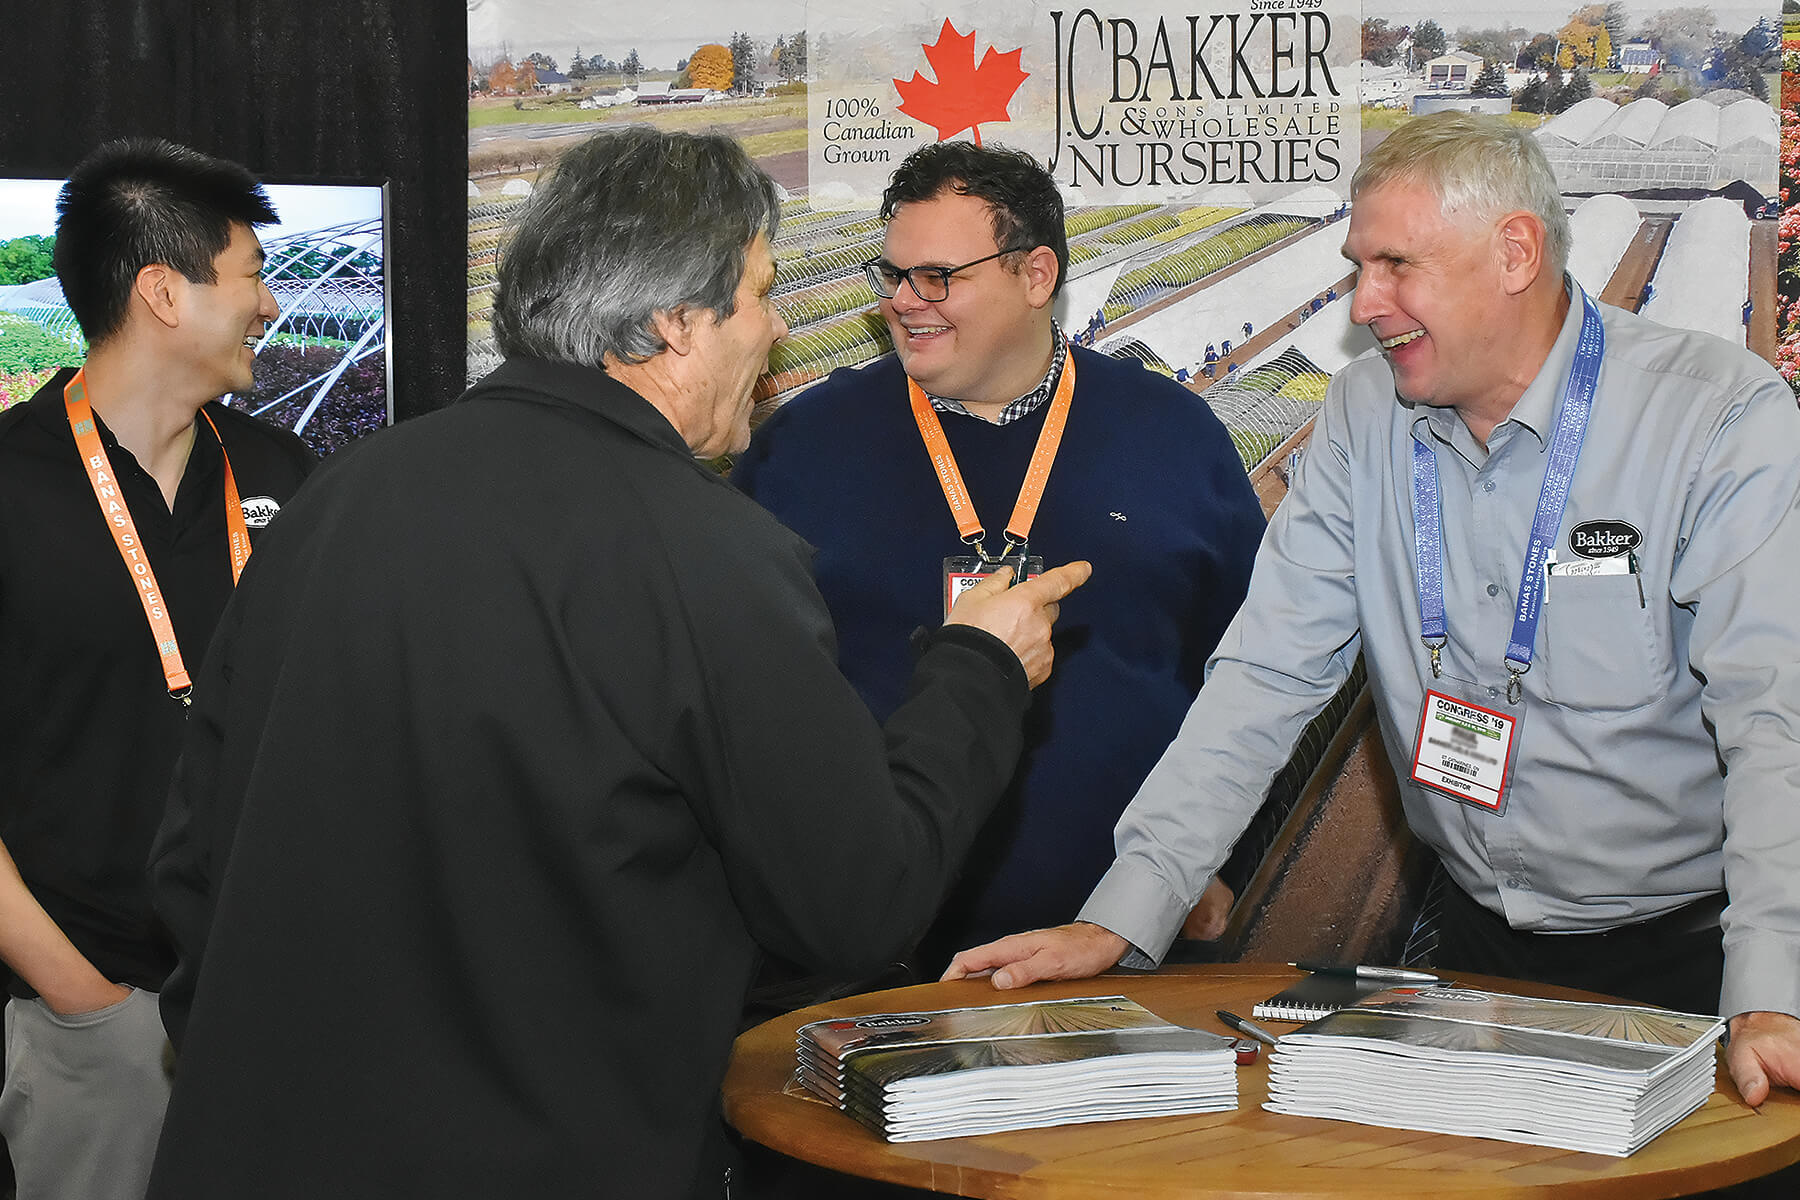 three happy men doing business at a trade show